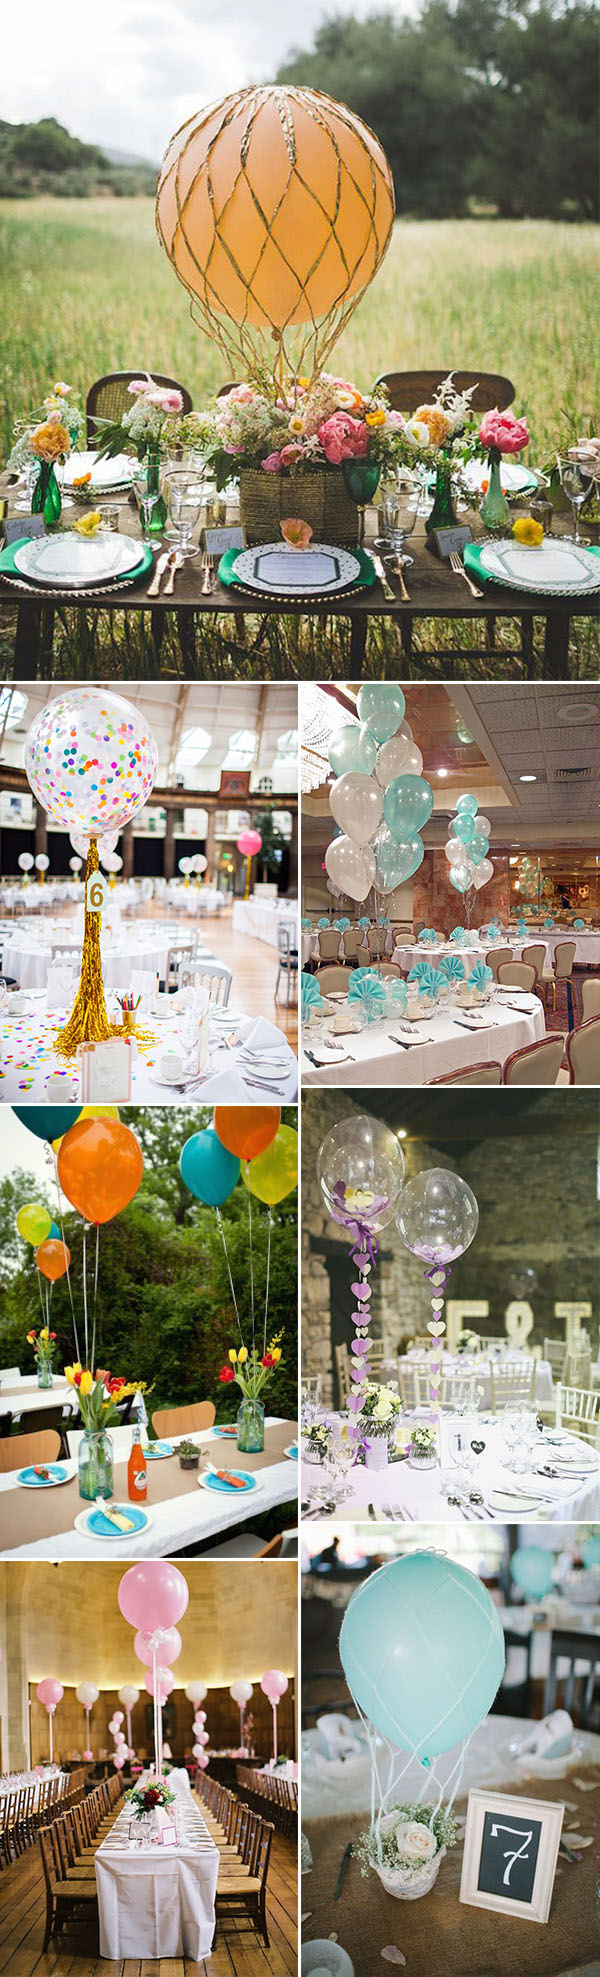 Creative fun ways to incorporate balloons into your